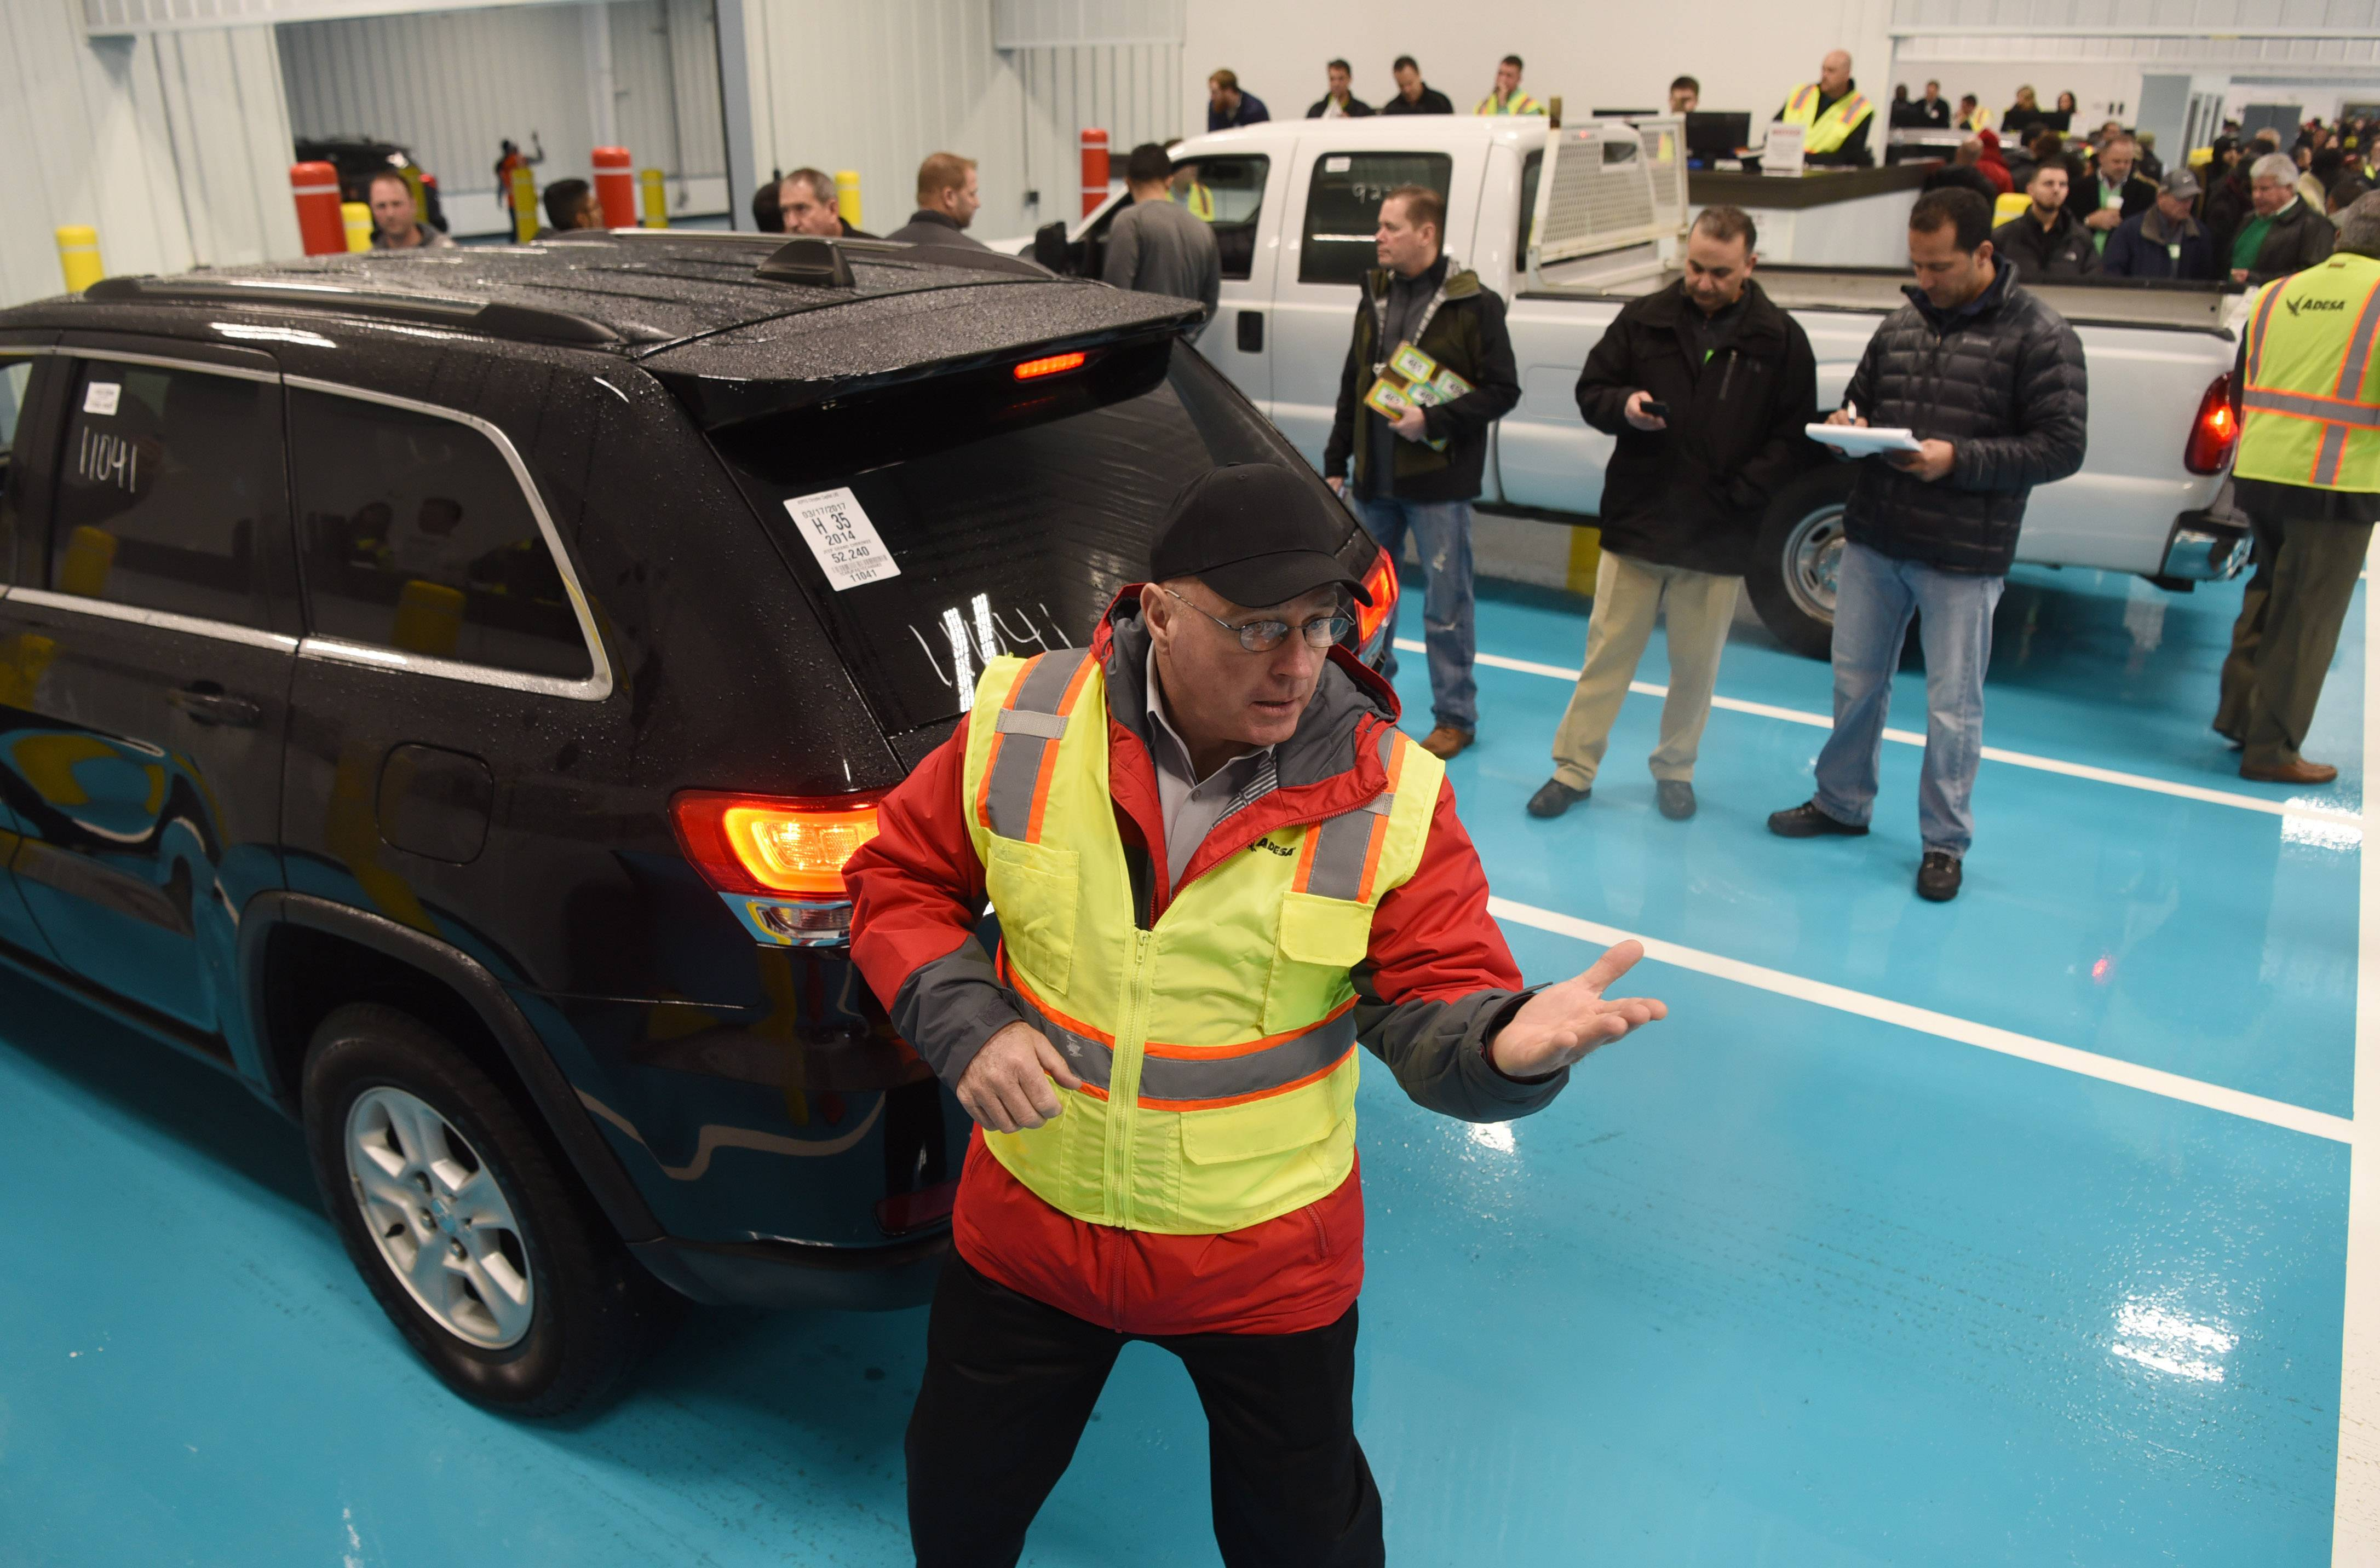 Ringman Mike Welch points toward bidders as cars are sold Friday during the grand opening of Adesa Chicago's vehicle auction facility in Hoffman Estates.